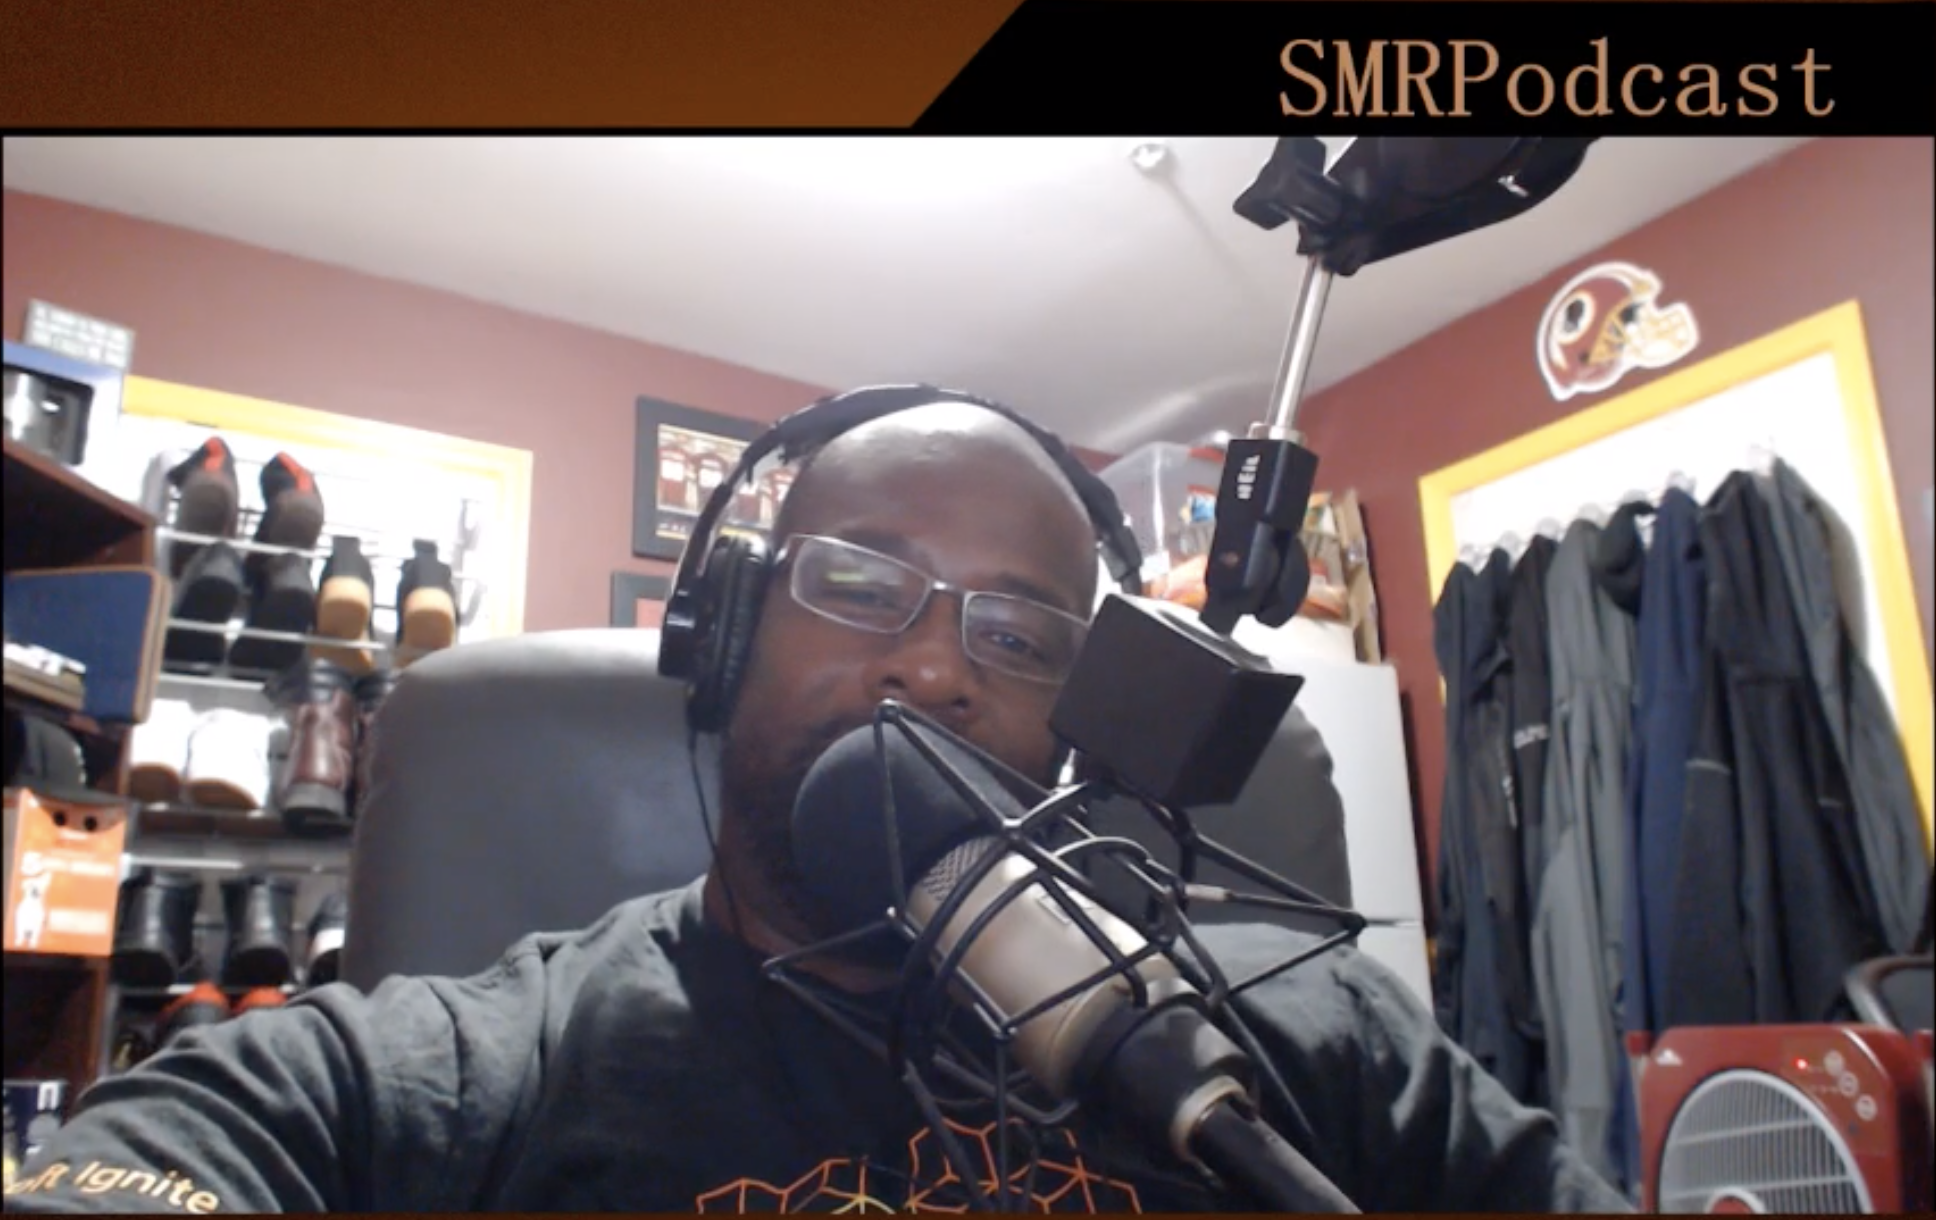 Chris Ashley of the SMRPodcast